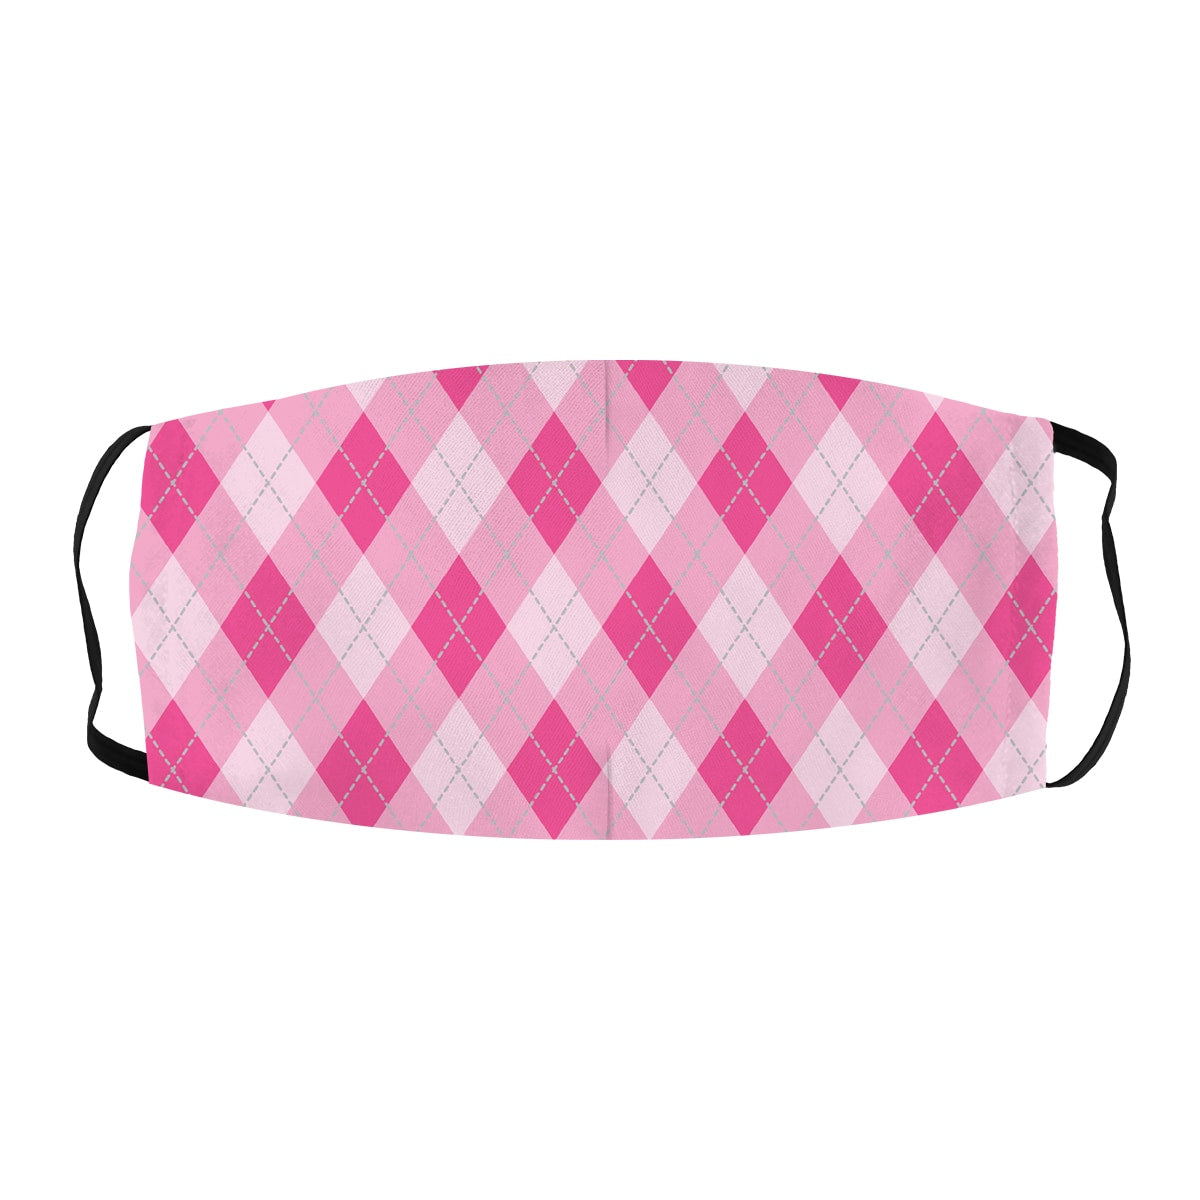 ASTI Face Mask Golf Plaid Pink